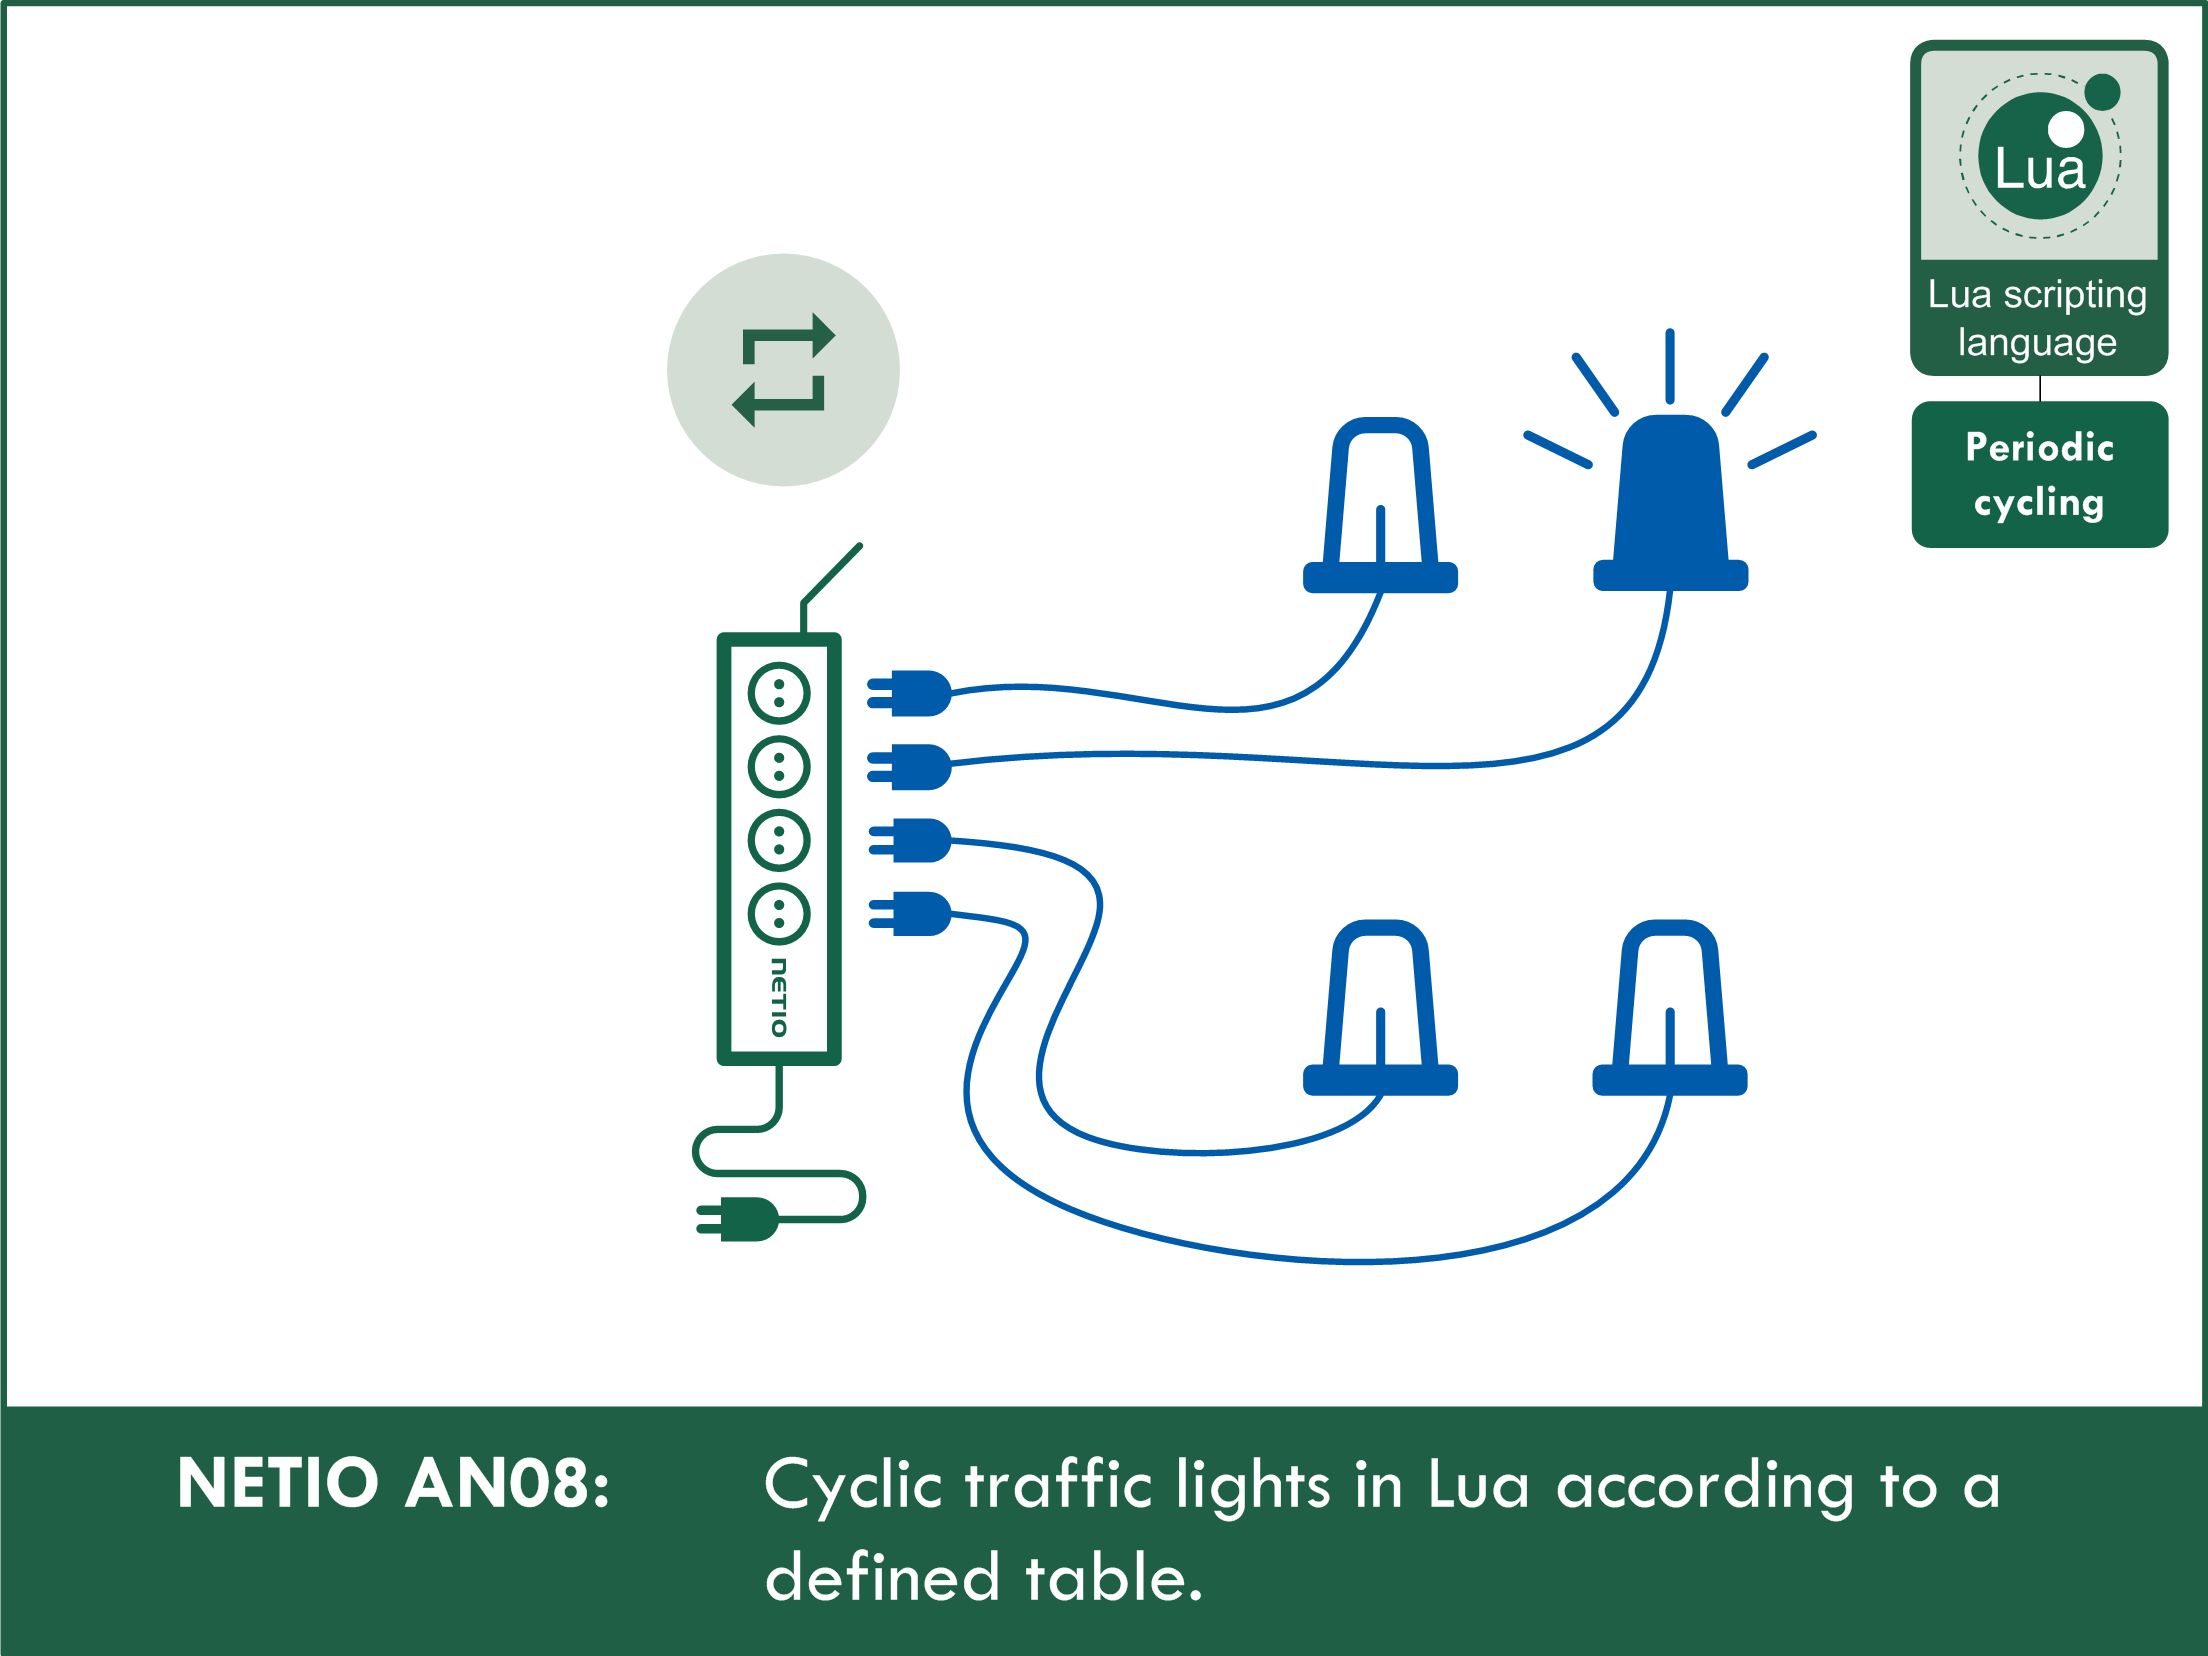 Cyclic traffic lights in Lua according to a defined table